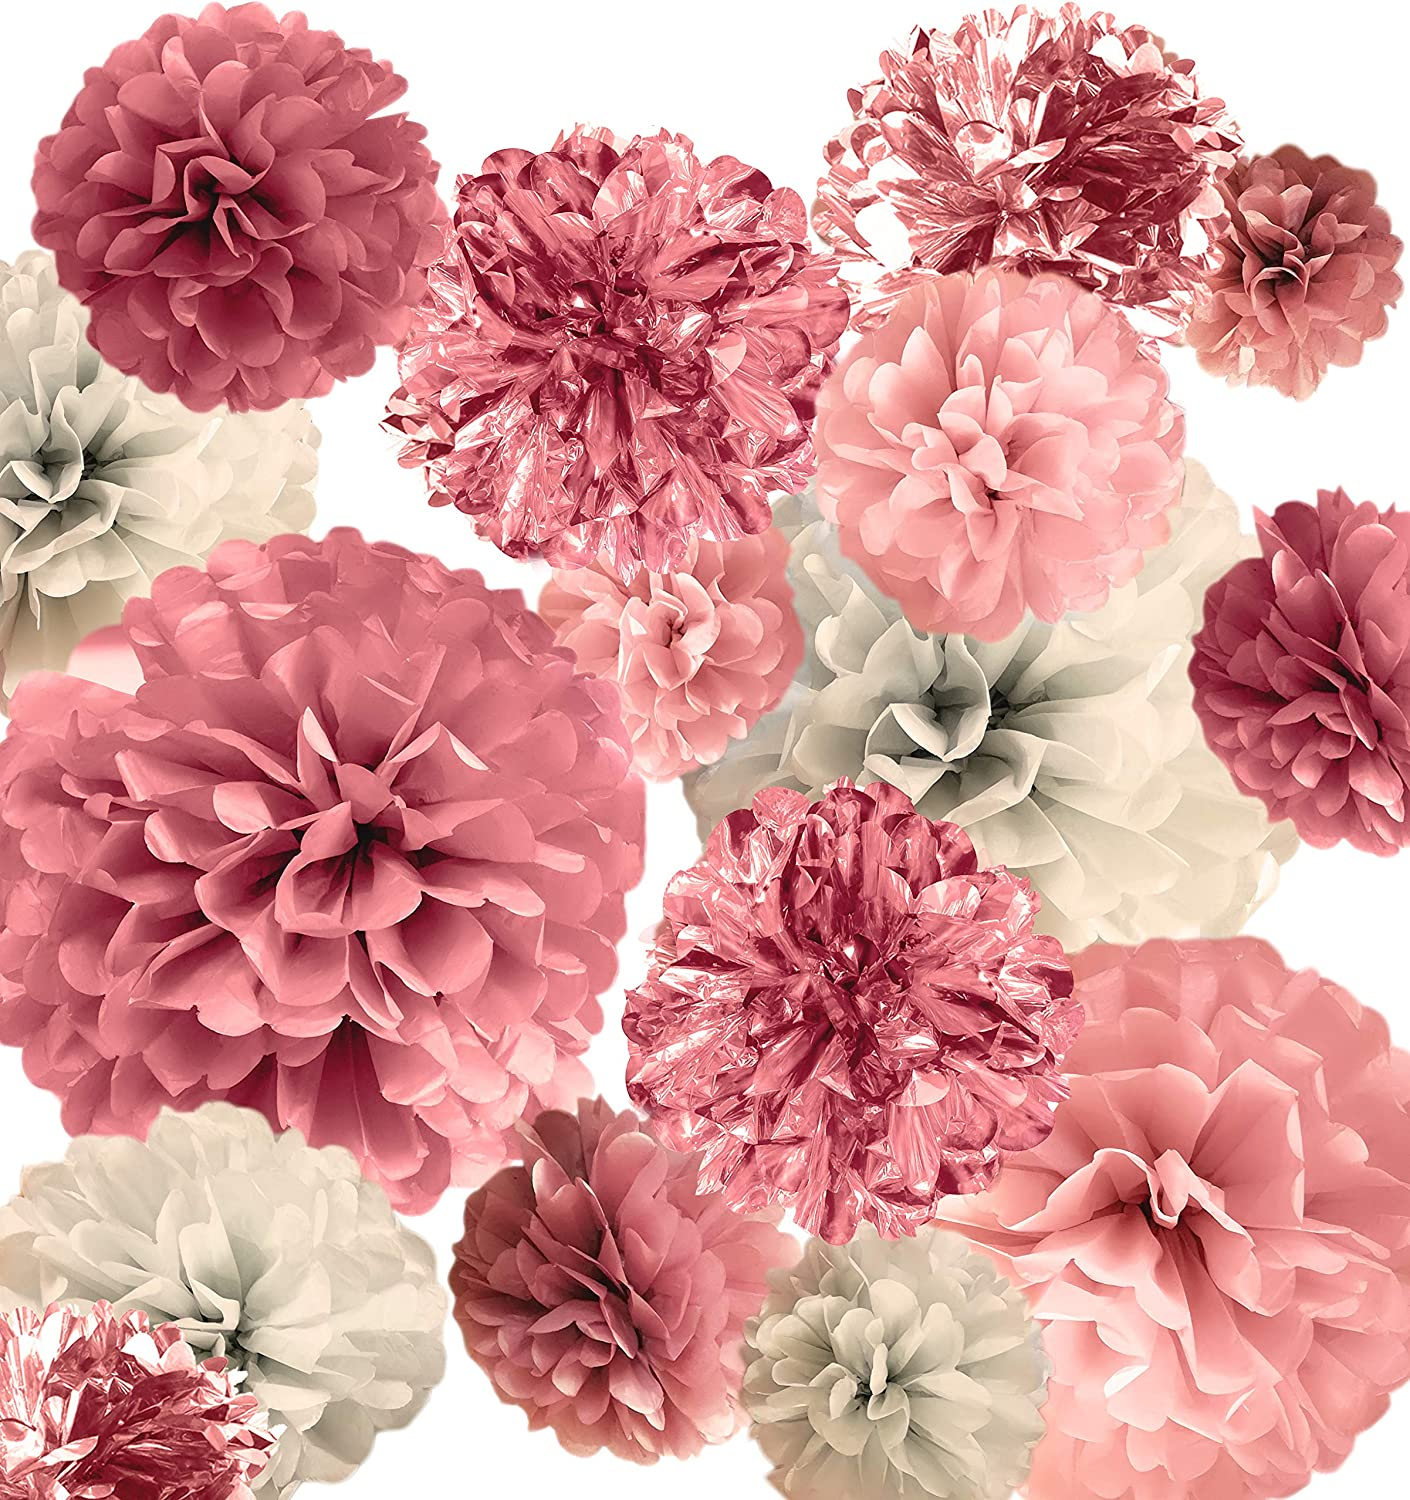 """VINANT 20 PCS Pink Rose Gold Party Decoration - Tissue Paper Pom Poms - Birthday Party Decoration - Baby Shower - Bridal Shower - Rose Gold, Dusty Rose, Blush Pink, Grey - 14"""", 10"""", 8"""", 6"""""""